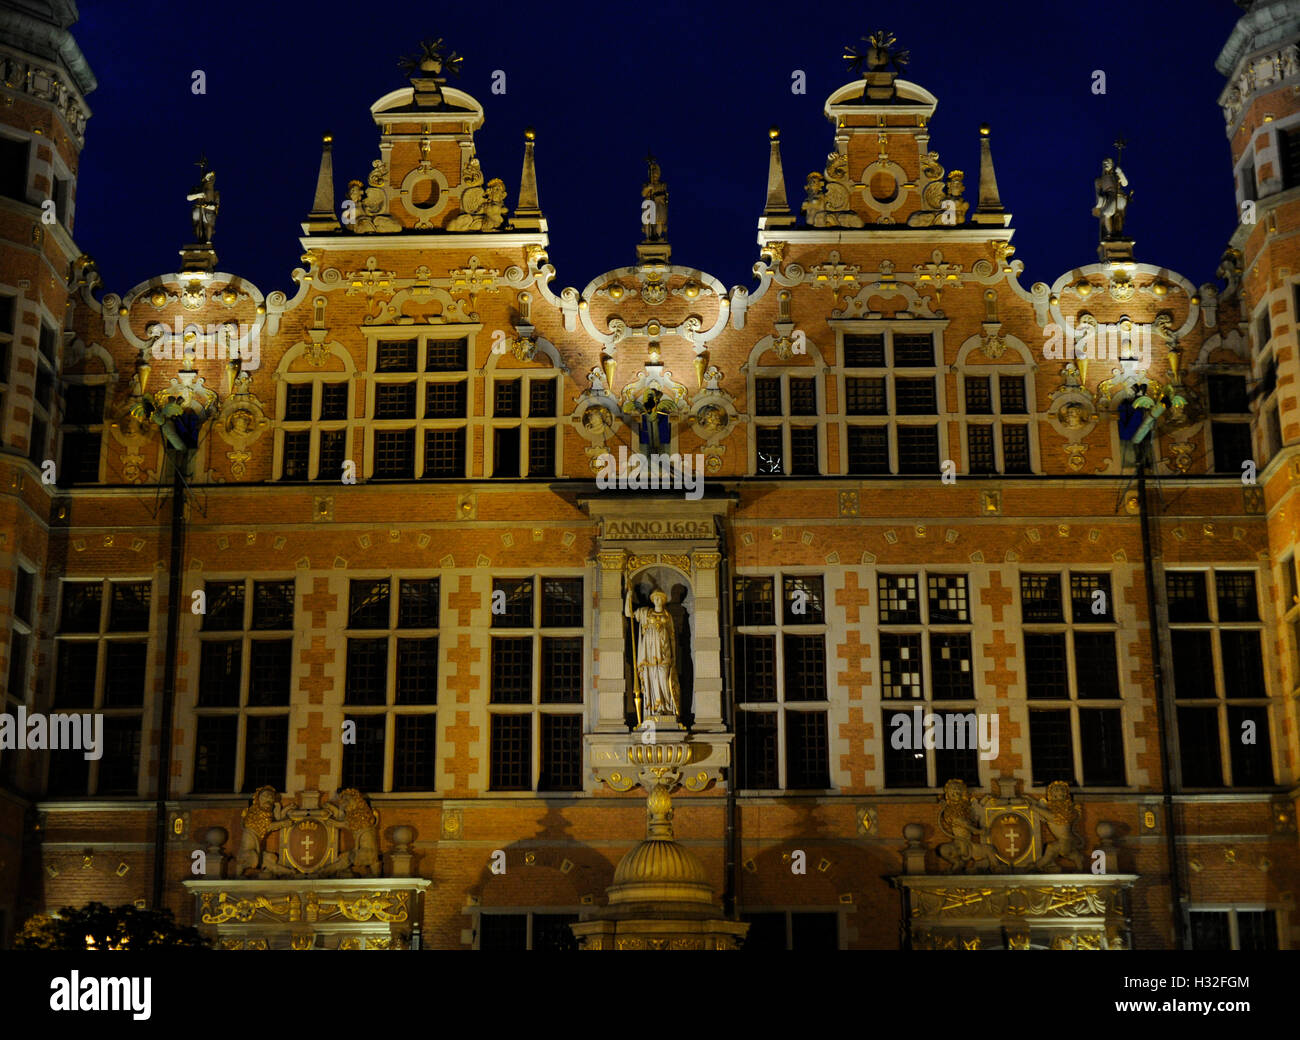 Poland. Gdansk. Great Arsenal. 17th centry. Mannerist. Architect Anthony van Obbergen (1543-1611). Night view. - Stock Image